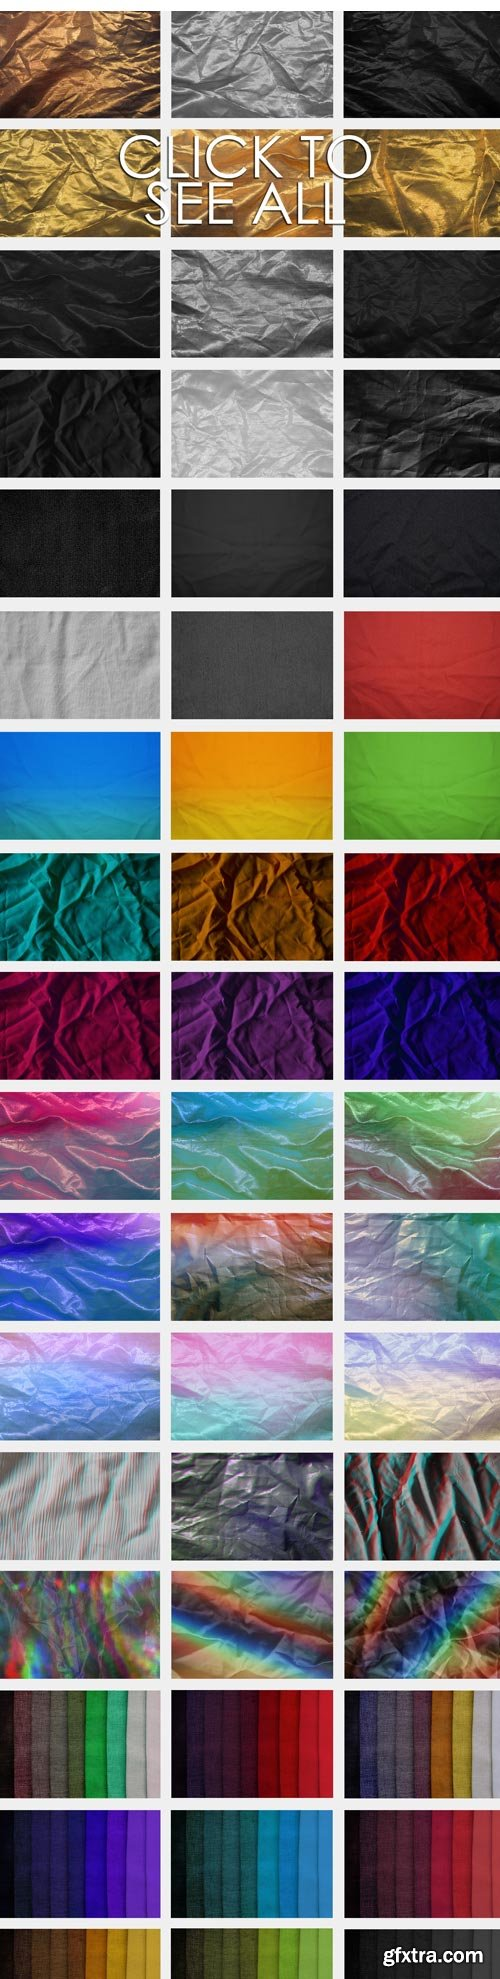 Designbundles - Textile & Fabric Backgrounds 61113